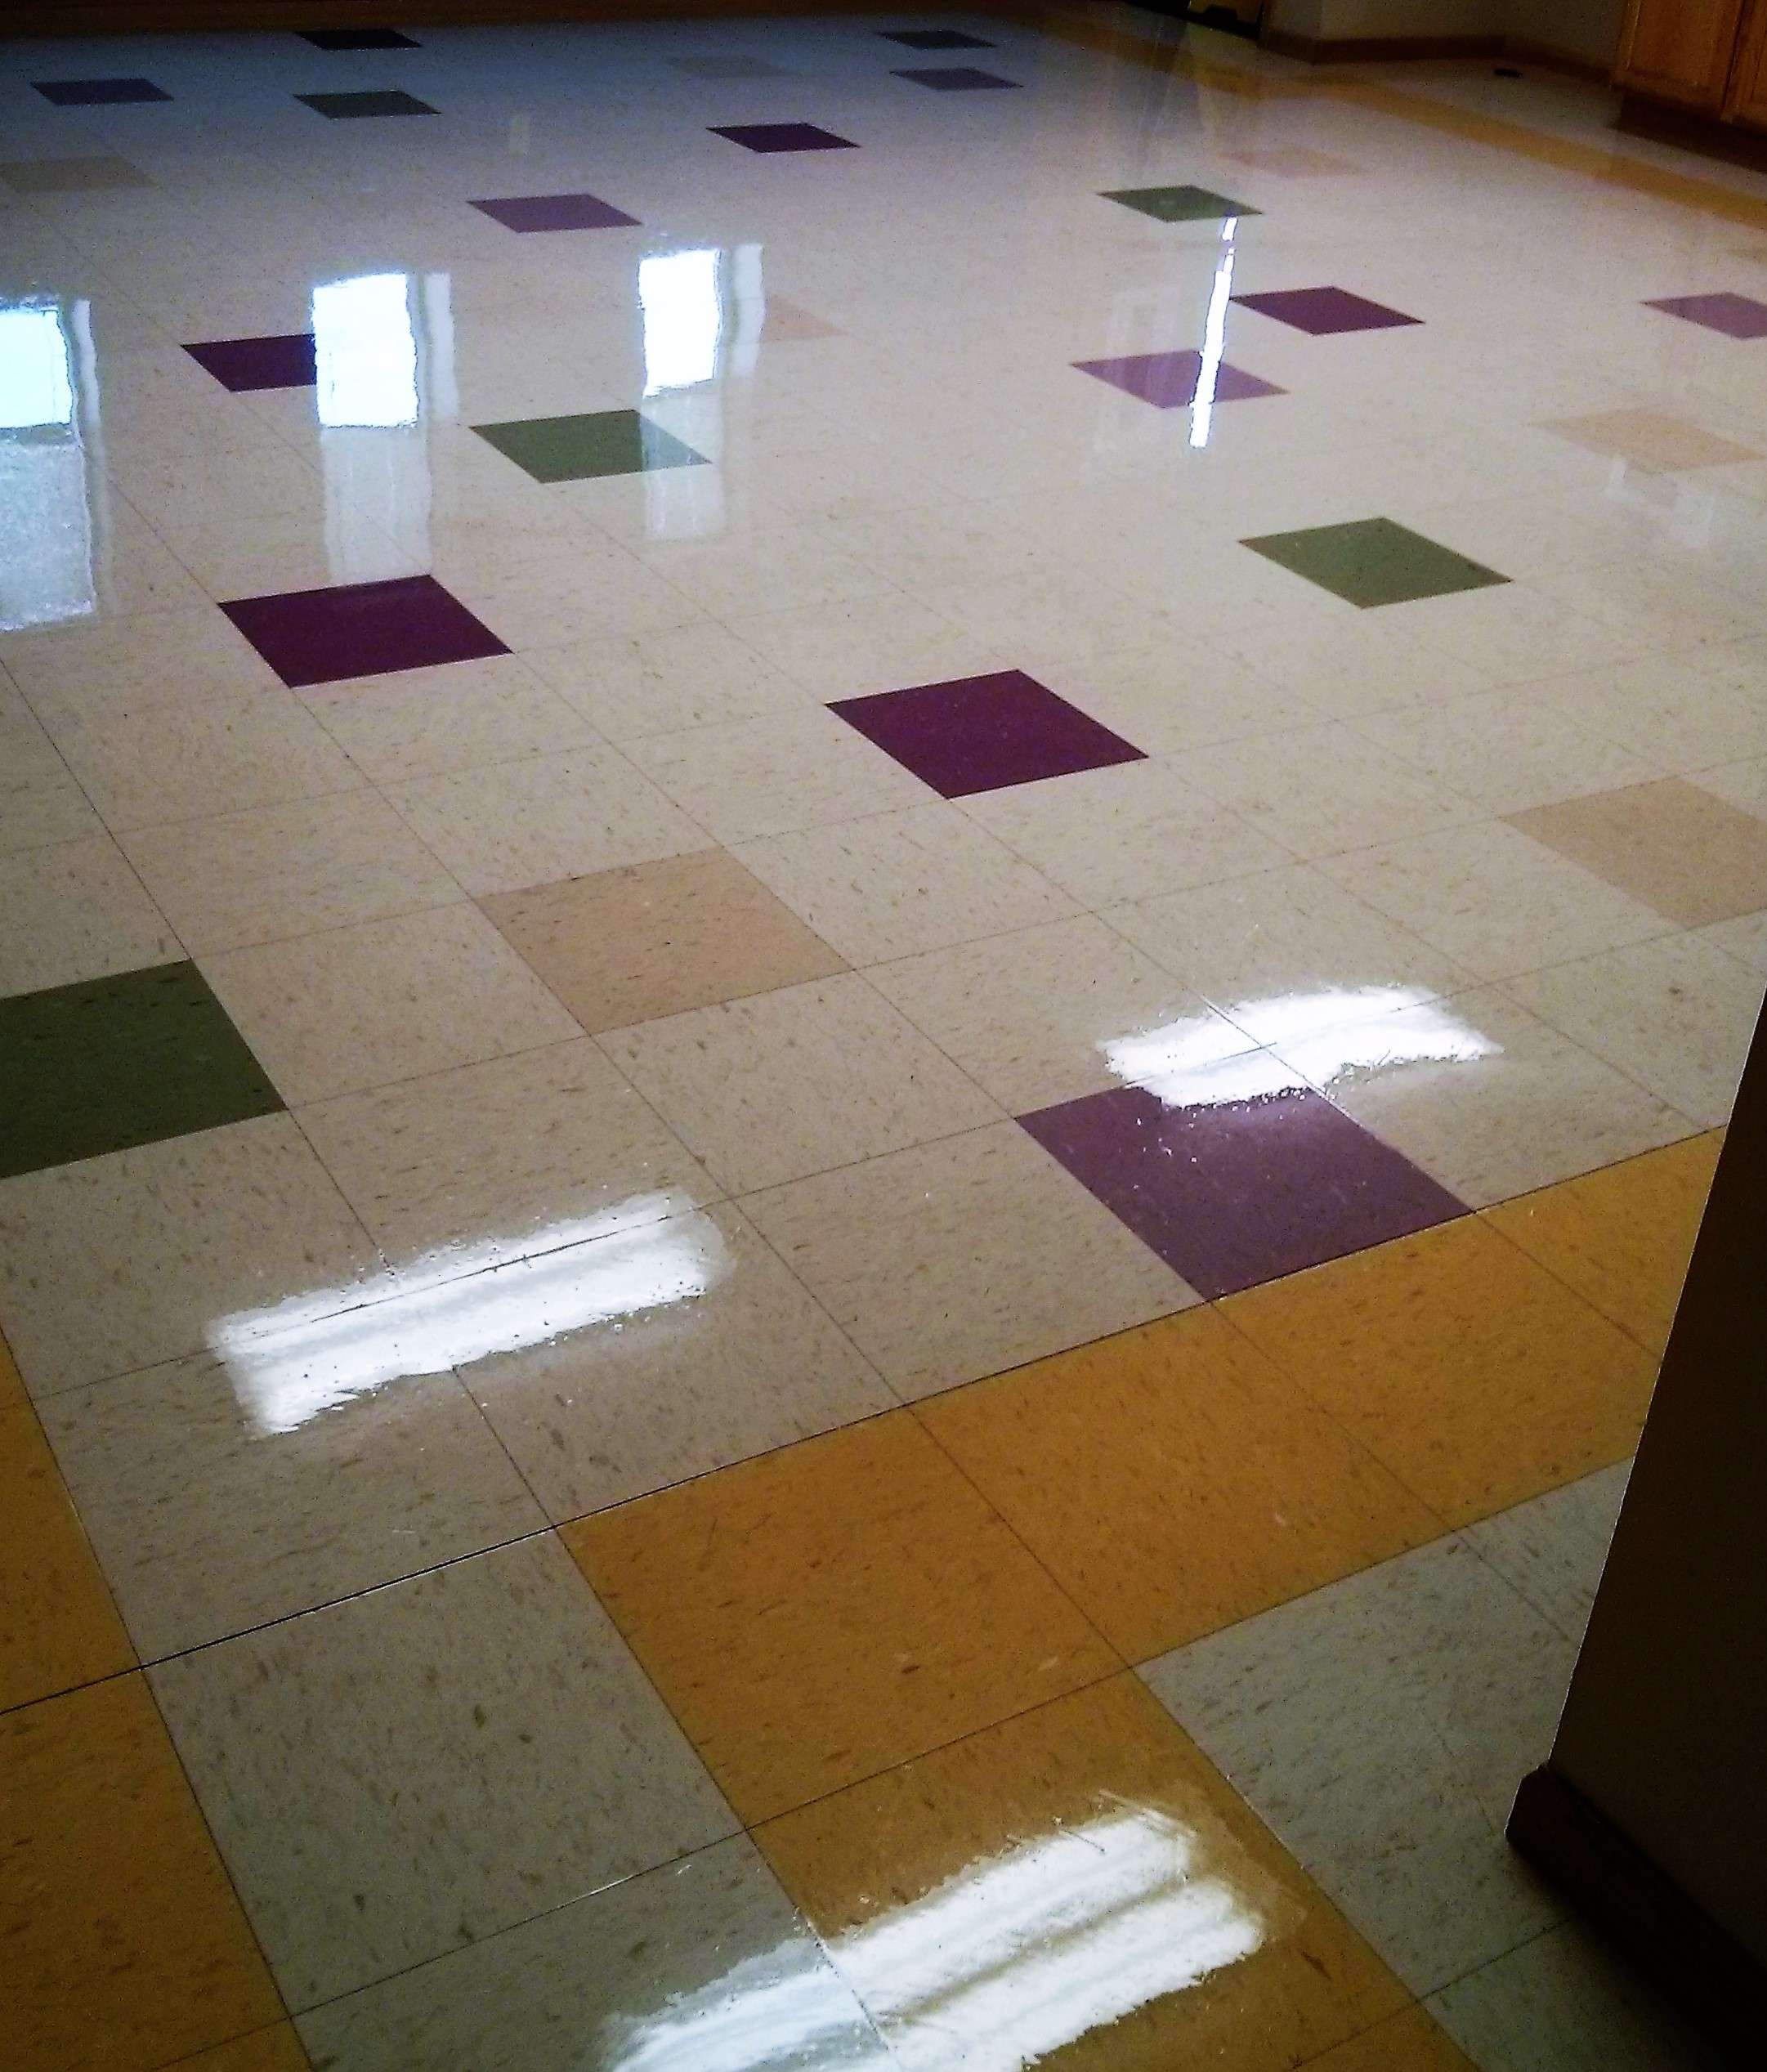 VCT Vinyl Tile Floor Really Pops After Deep Scrub And Recoat - Discount tile mn